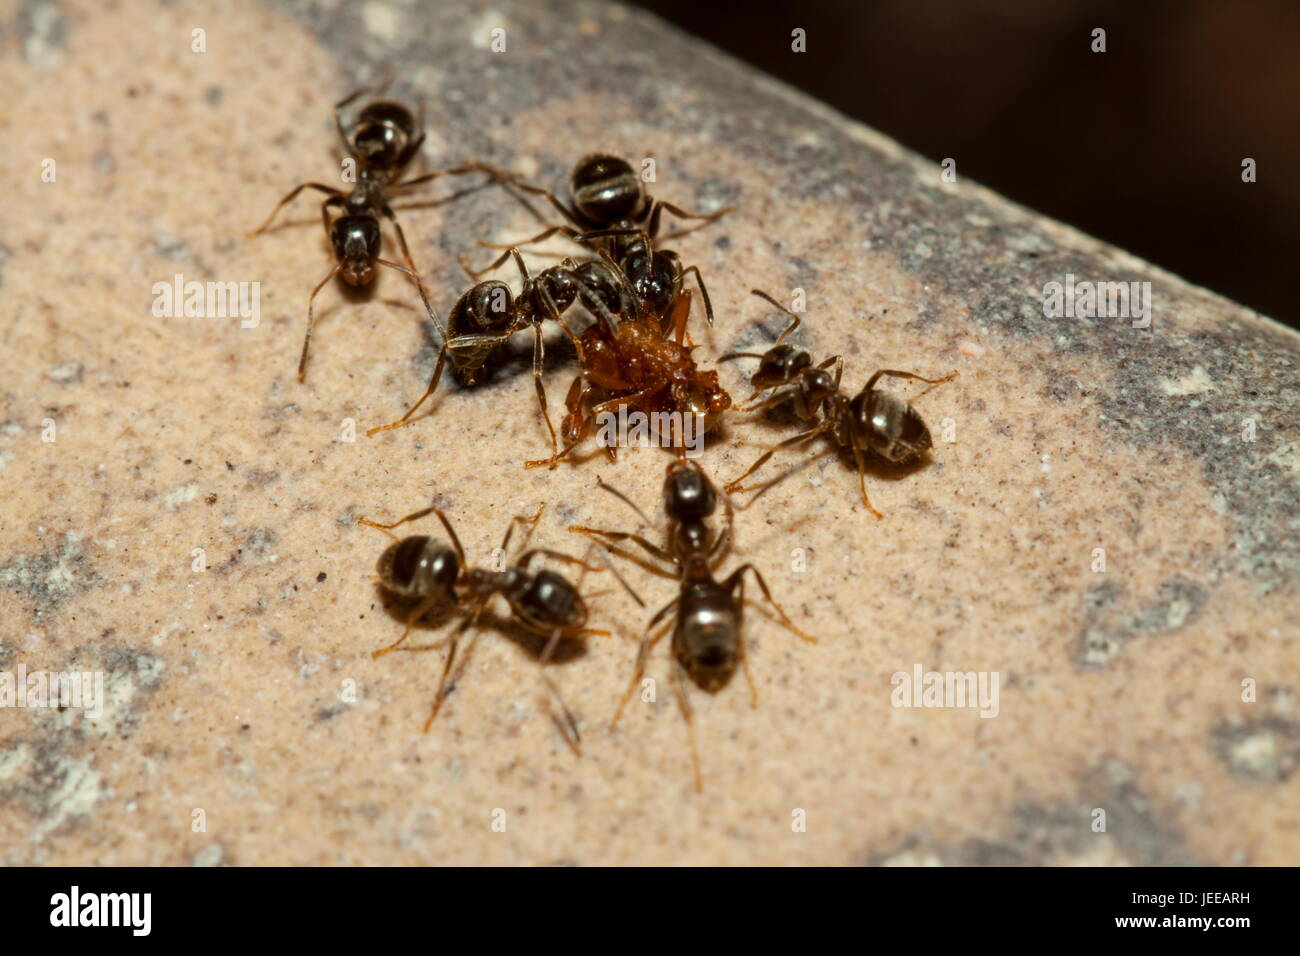 red ants attacking black ant stockfotos red ants attacking black ant bilder alamy. Black Bedroom Furniture Sets. Home Design Ideas